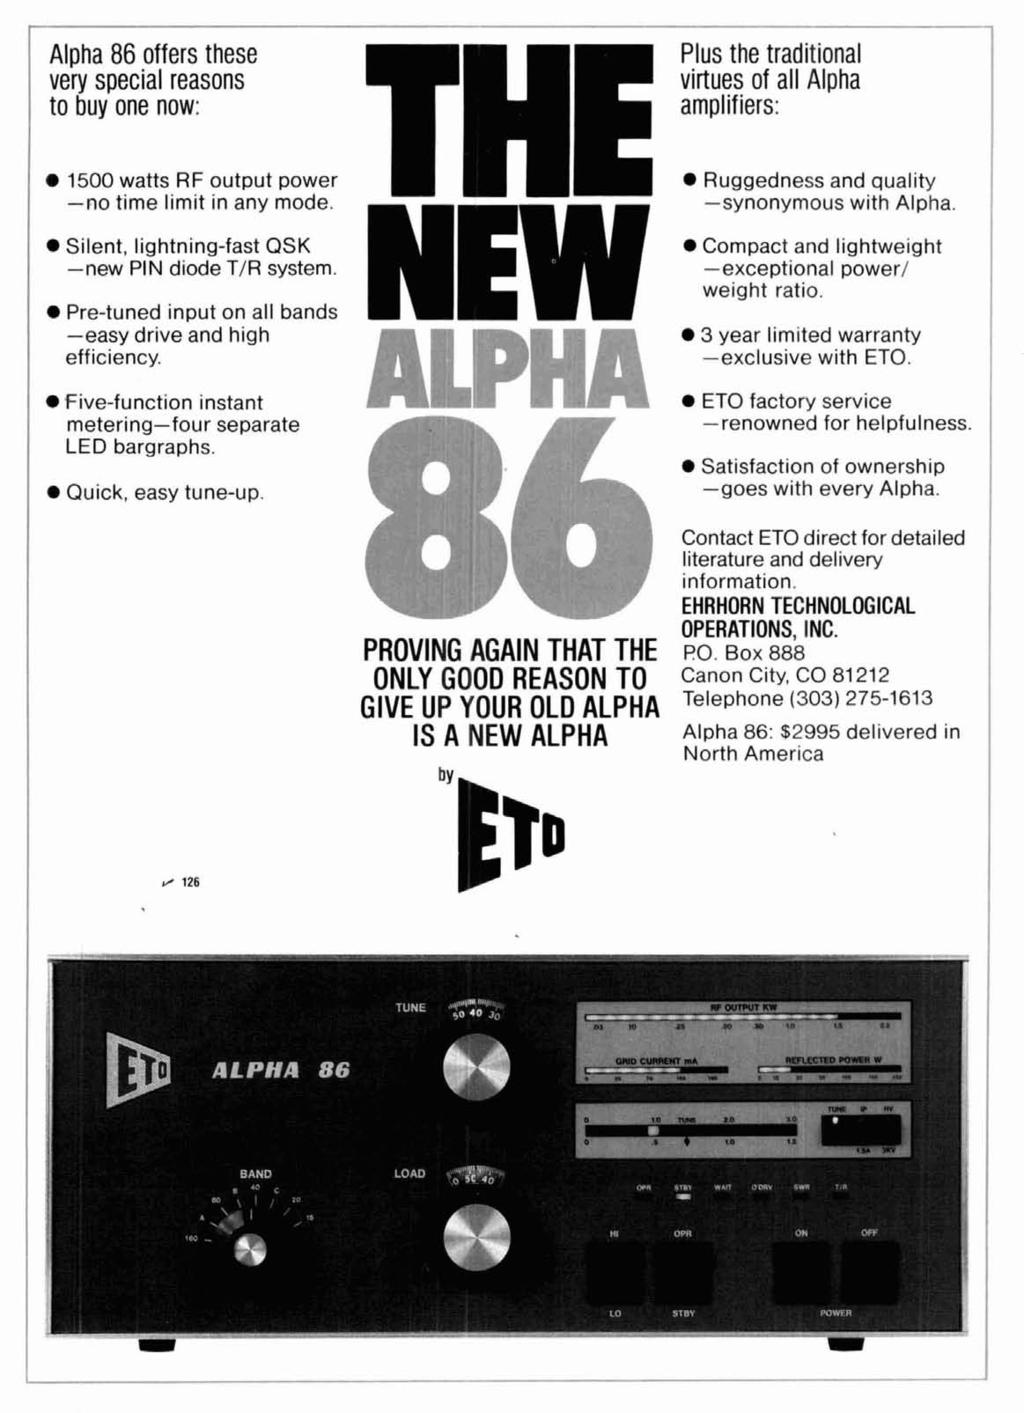 October 250 Magazine Pdf Dayton Audio 150w Power Amplifier Alpha 86 Offers These Very Special Reasons To Buy One Now Plus The Traditional Virtues